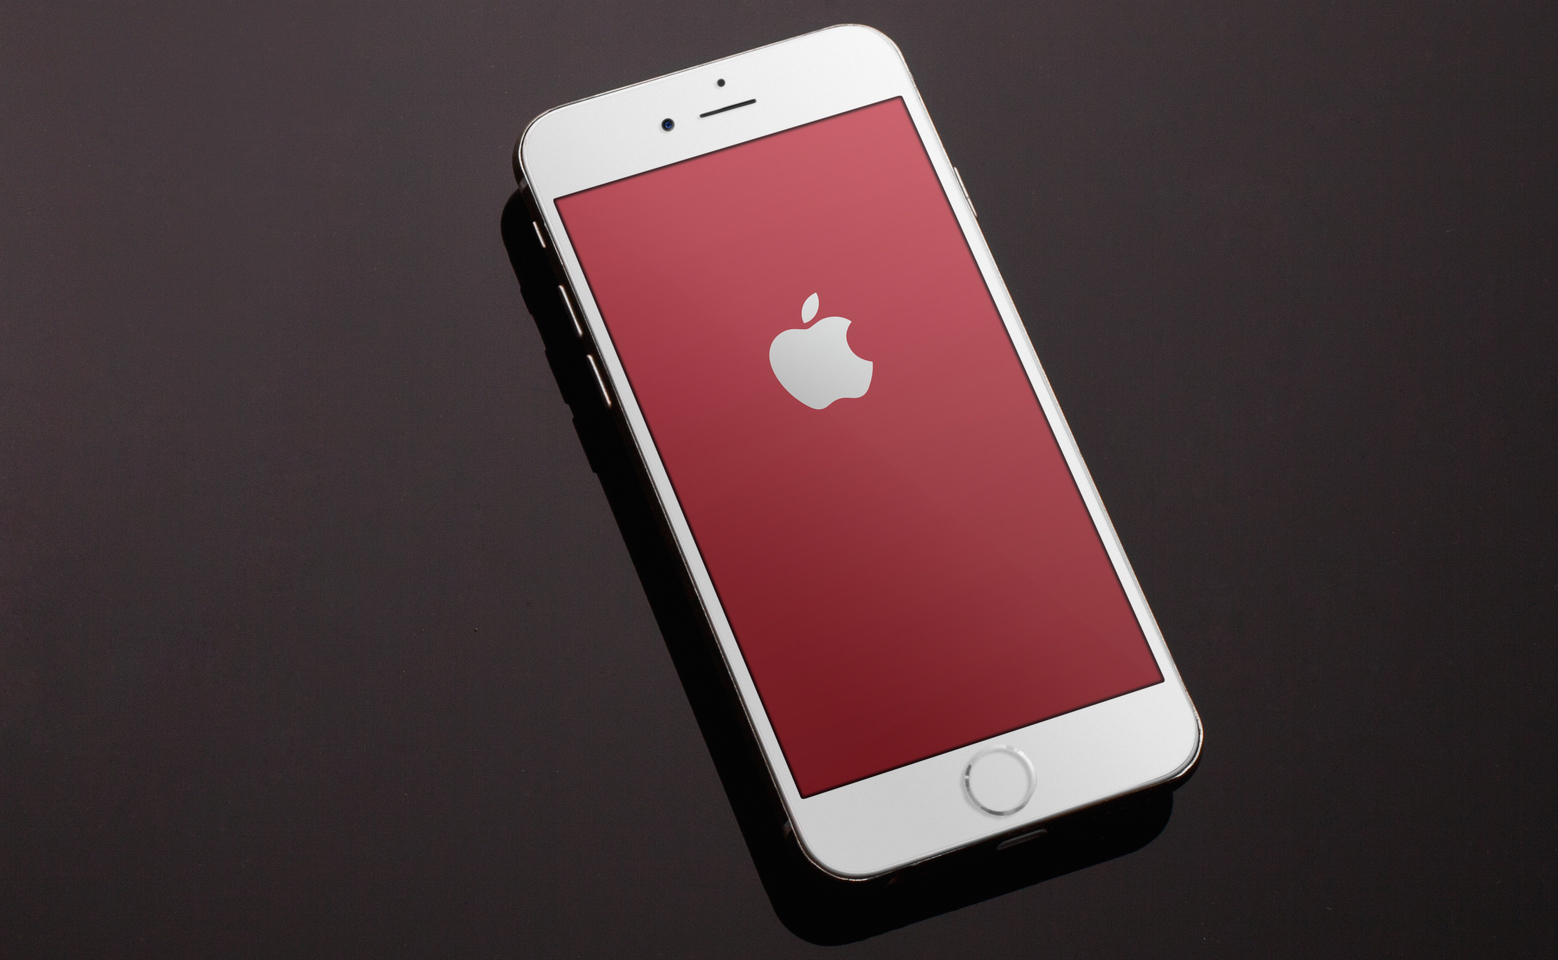 Iphone Wallpaper: IPhone 7 (PRODUCT)RED-inspired Wallpapers